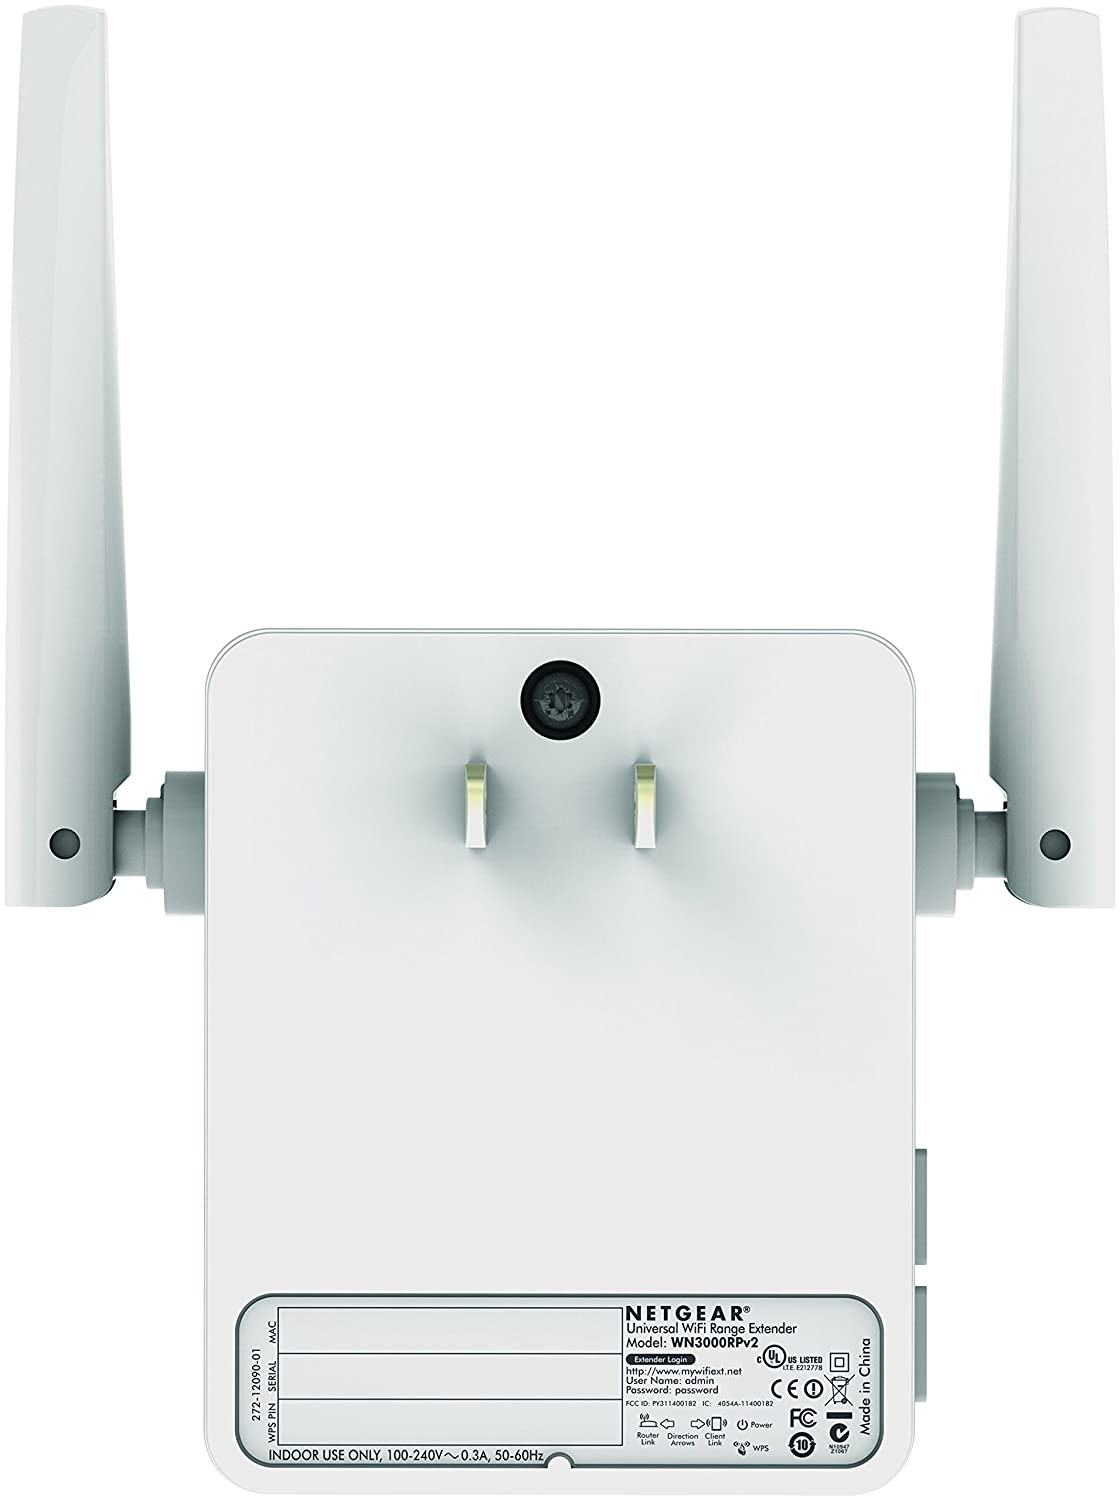 Booster Plug Install Guide: Wireless WiFi Internet Range Extender Booster Router